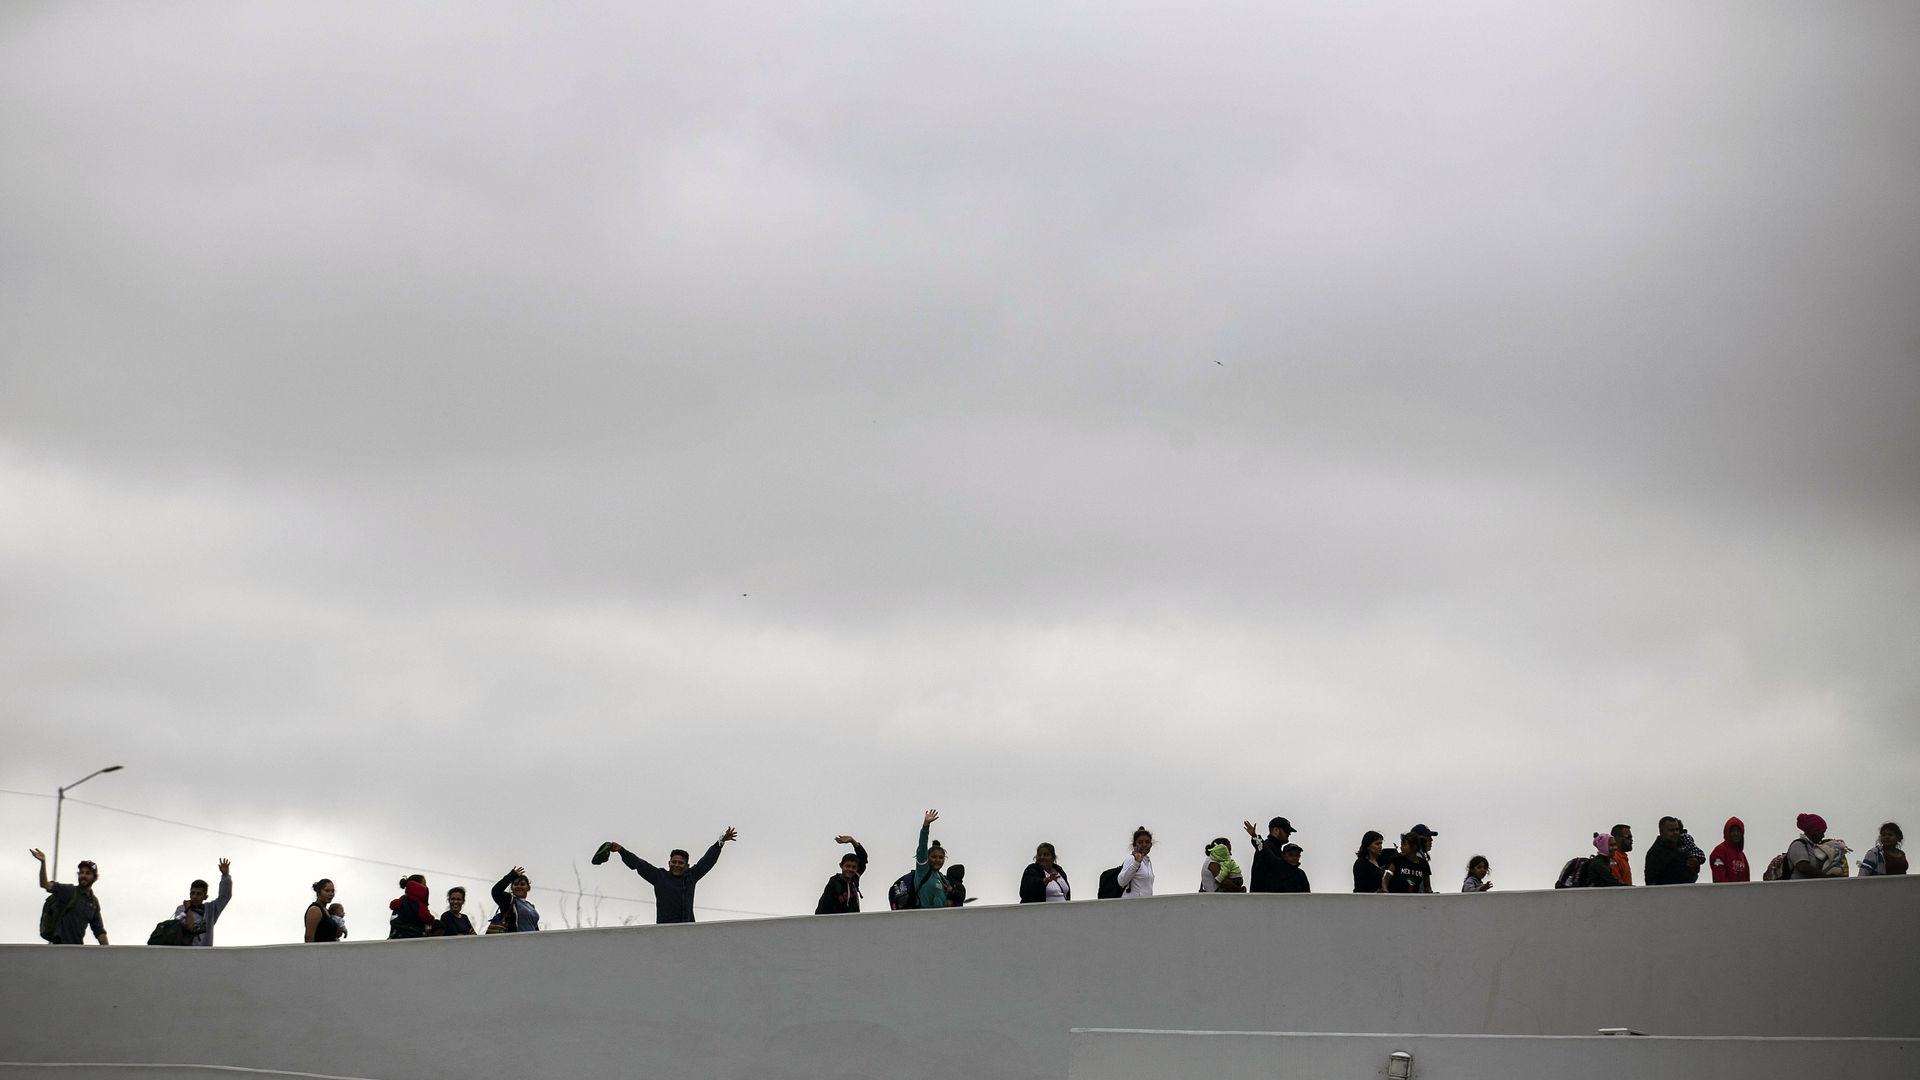 People waving overtop of a white wall with a grey sky in the background